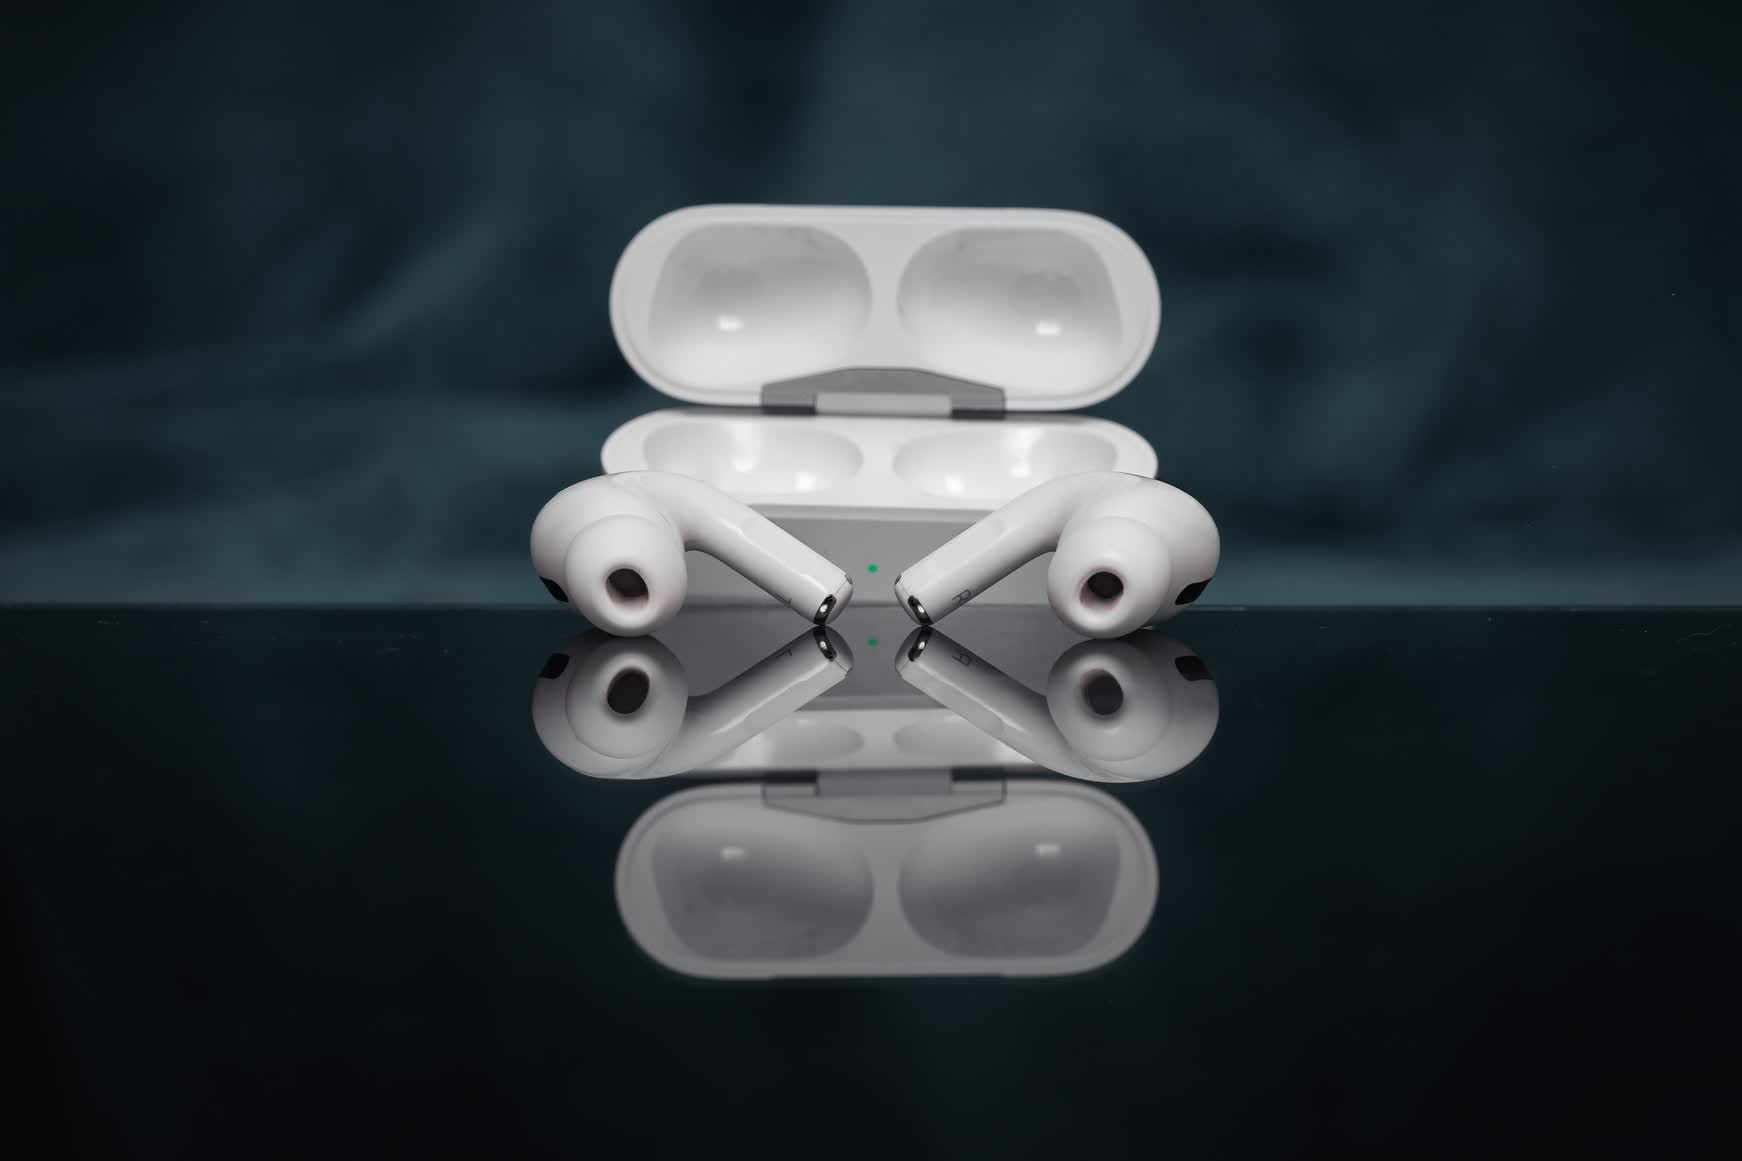 Apple is extending the AirPods Pro free repair program to three years